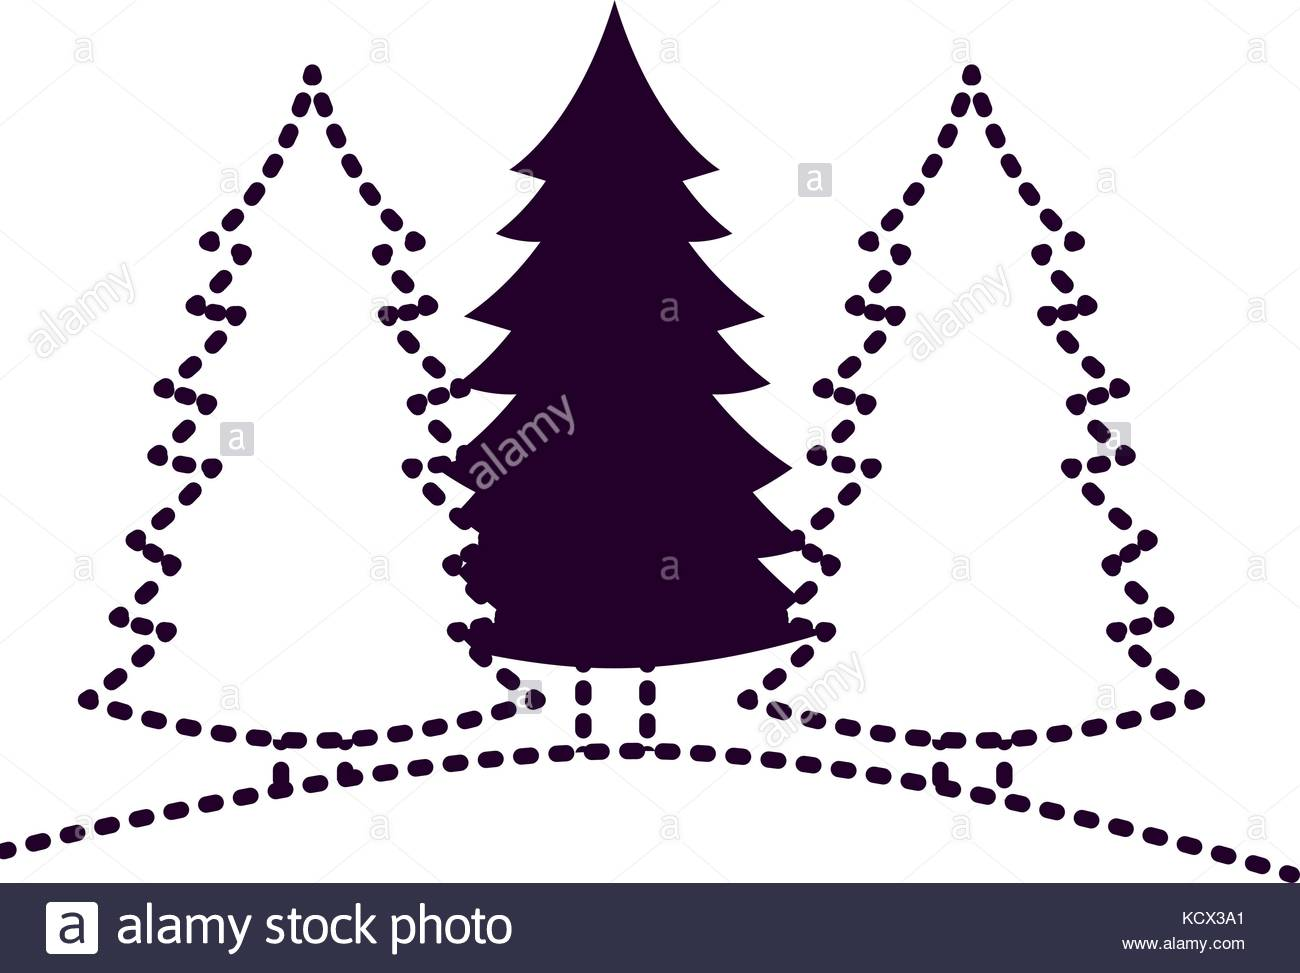 1300x973 Coniferous Forest Stock Vector Images